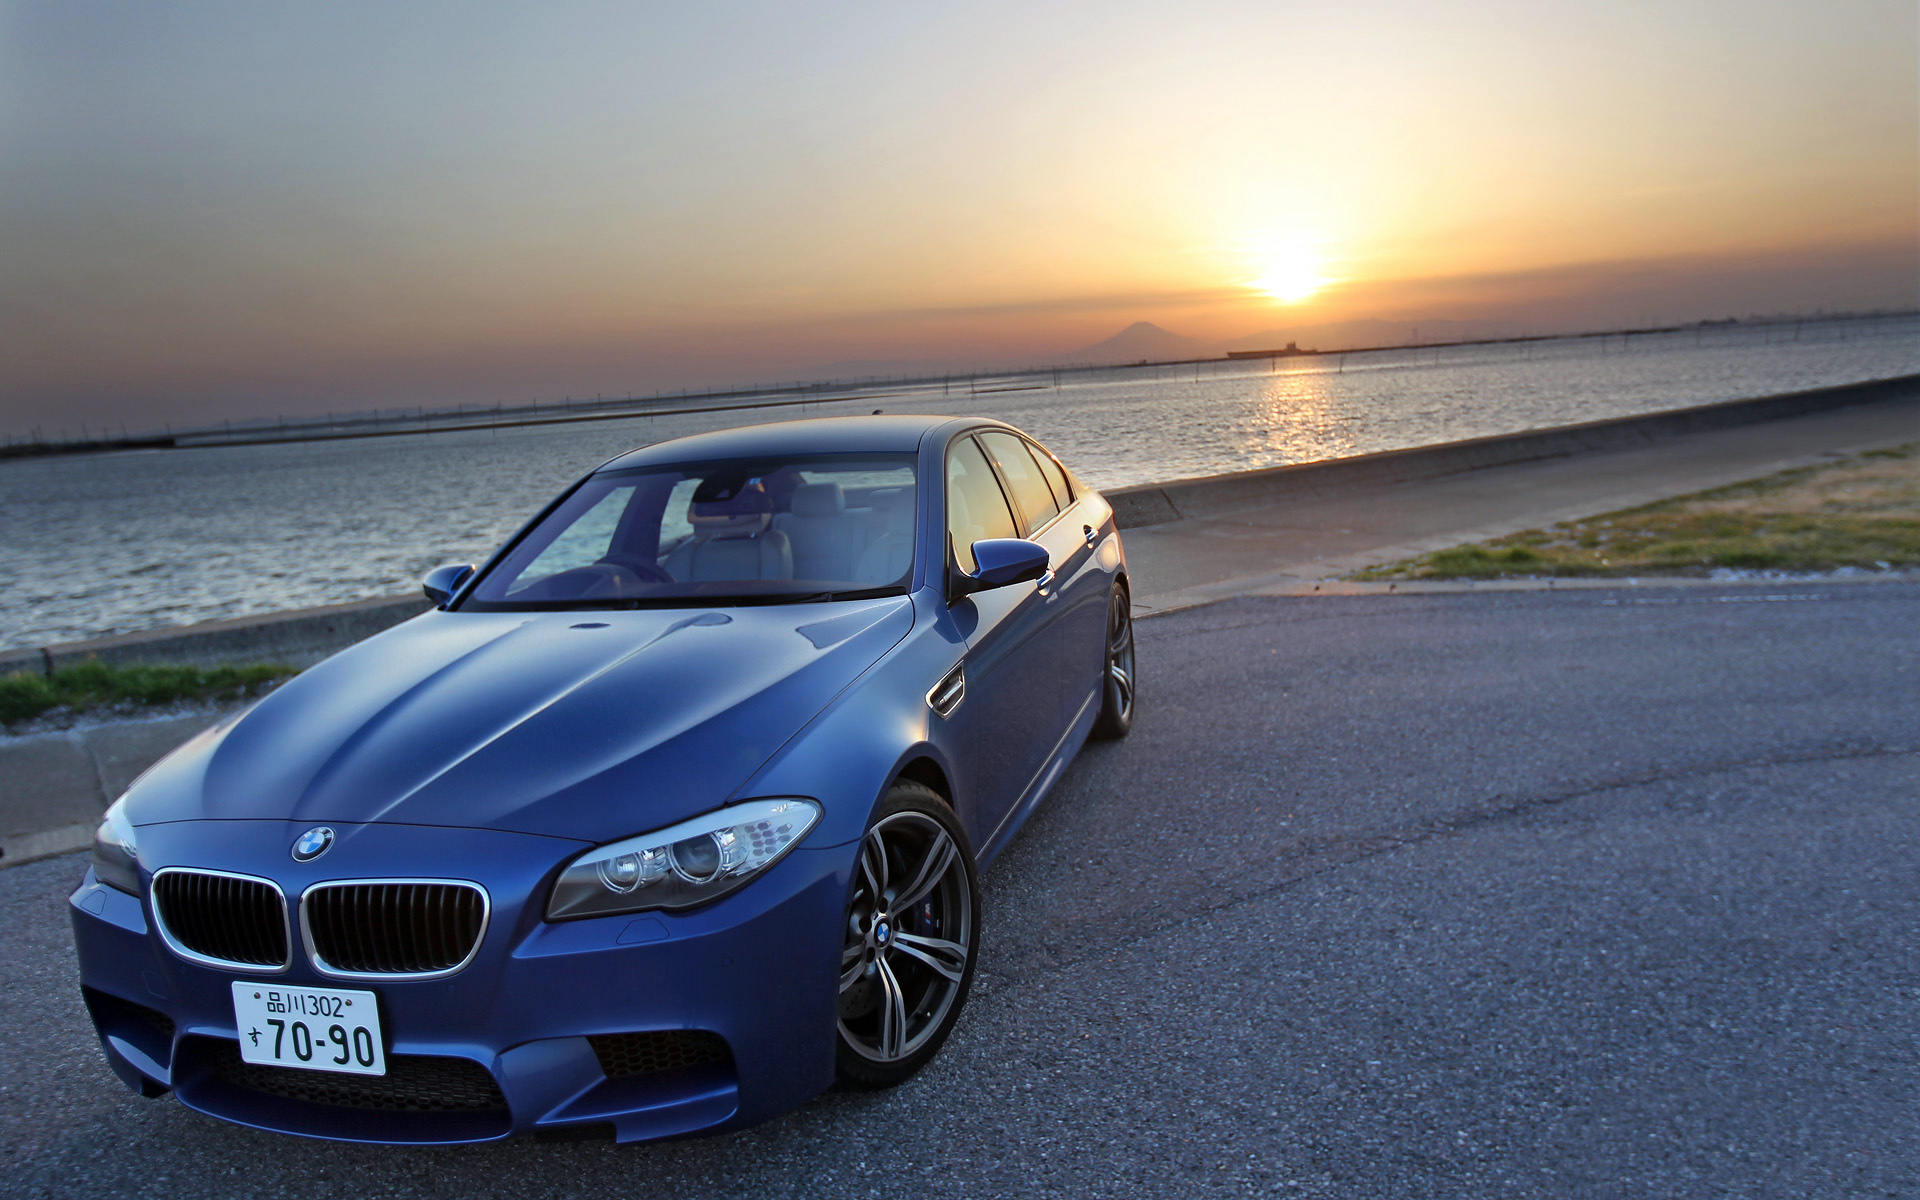 BMW M5 Wallpaper Sunset At Beach